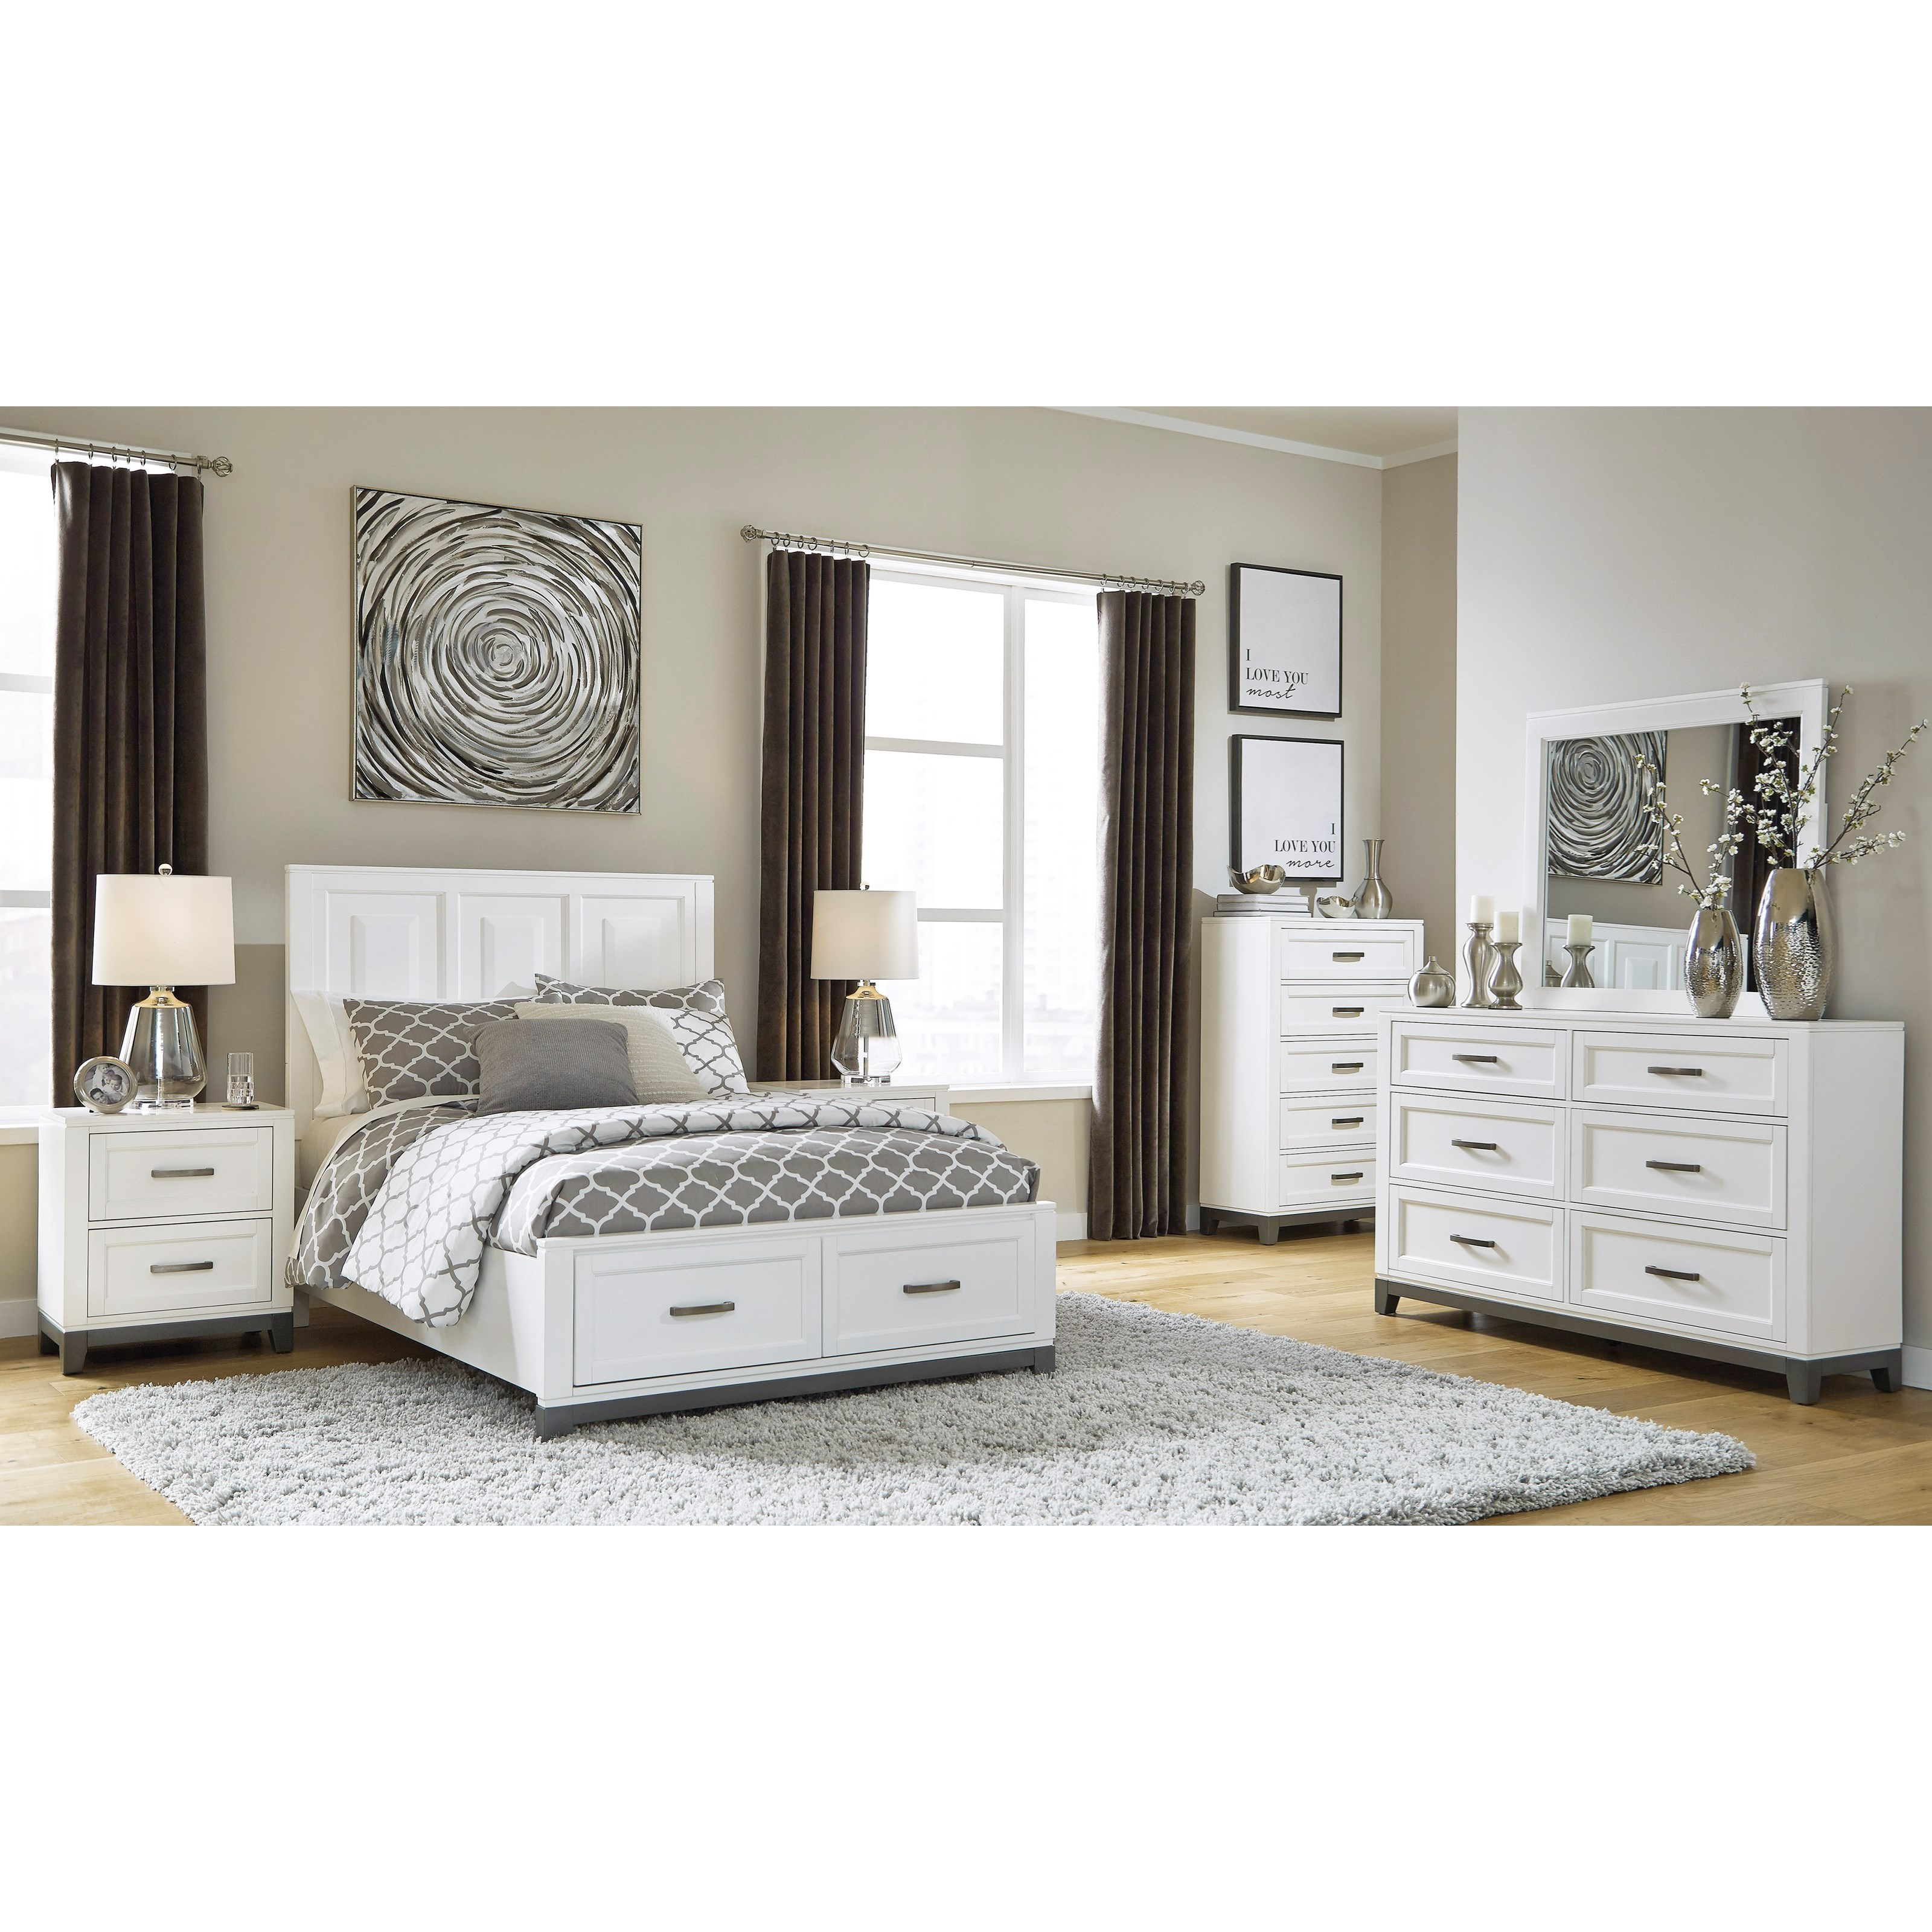 Brynburg Full Bedroom Group by Benchcraft at Miller Waldrop Furniture and Decor